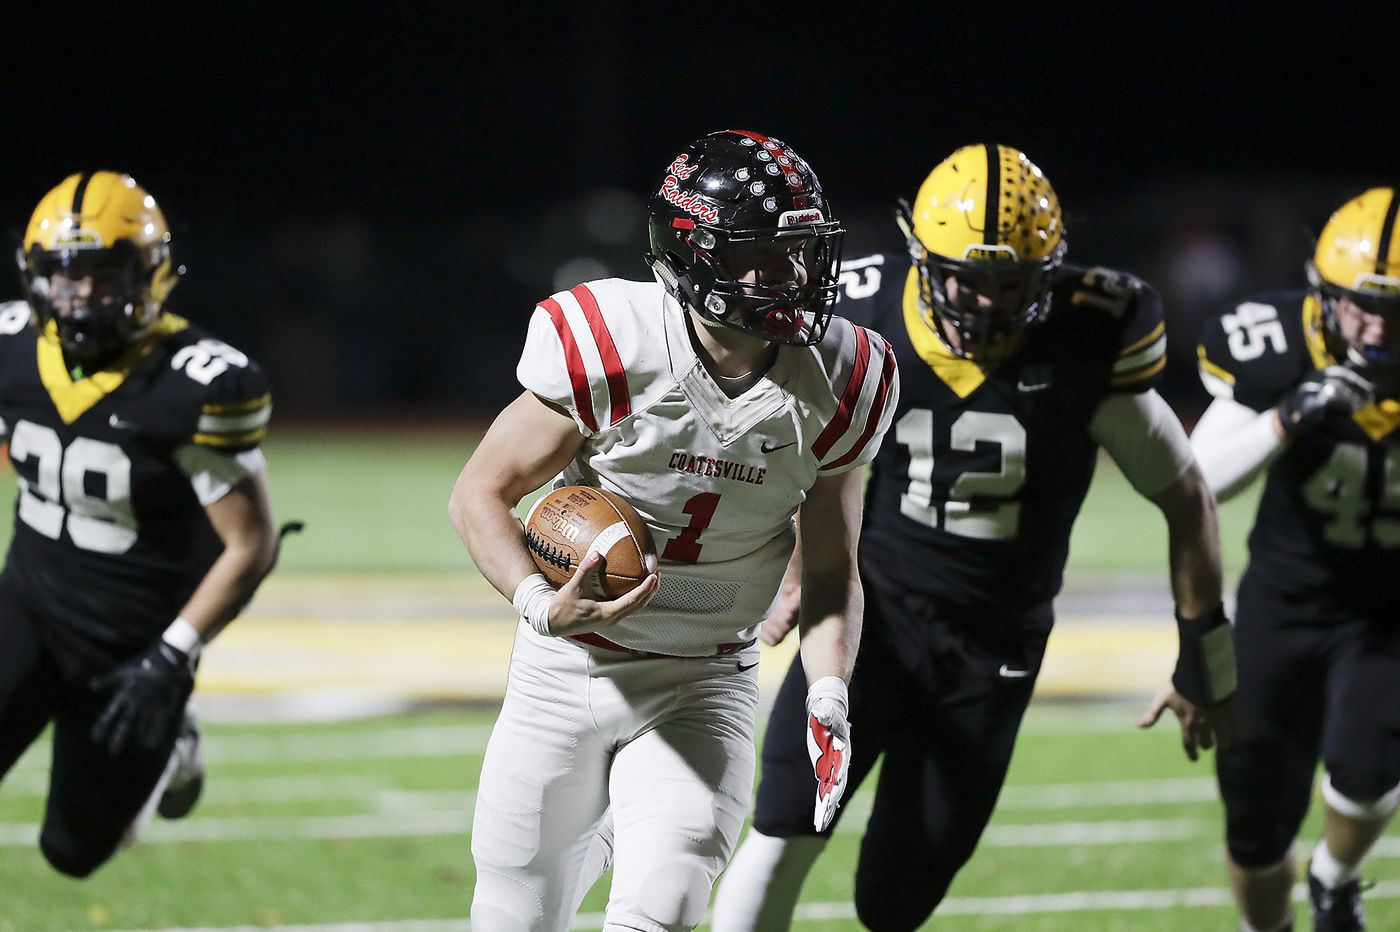 Ricky Ortega, Dapree Bryant power Coatesville past Central Bucks West in District 1 quarterfinal